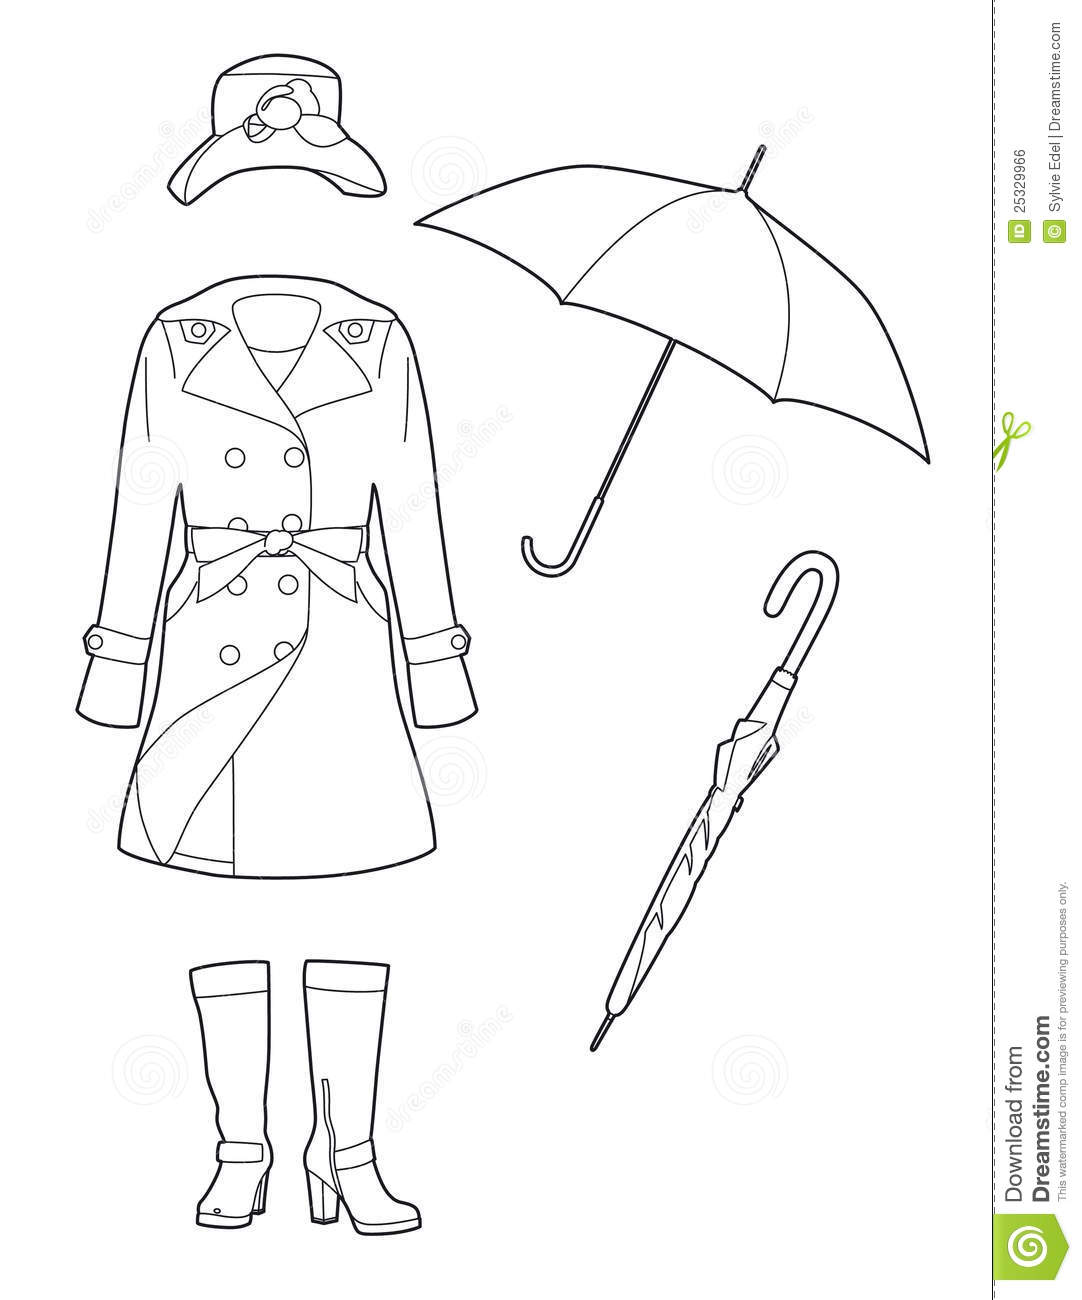 Drawing Rainwear Stock Vector Illustration Of Accessories